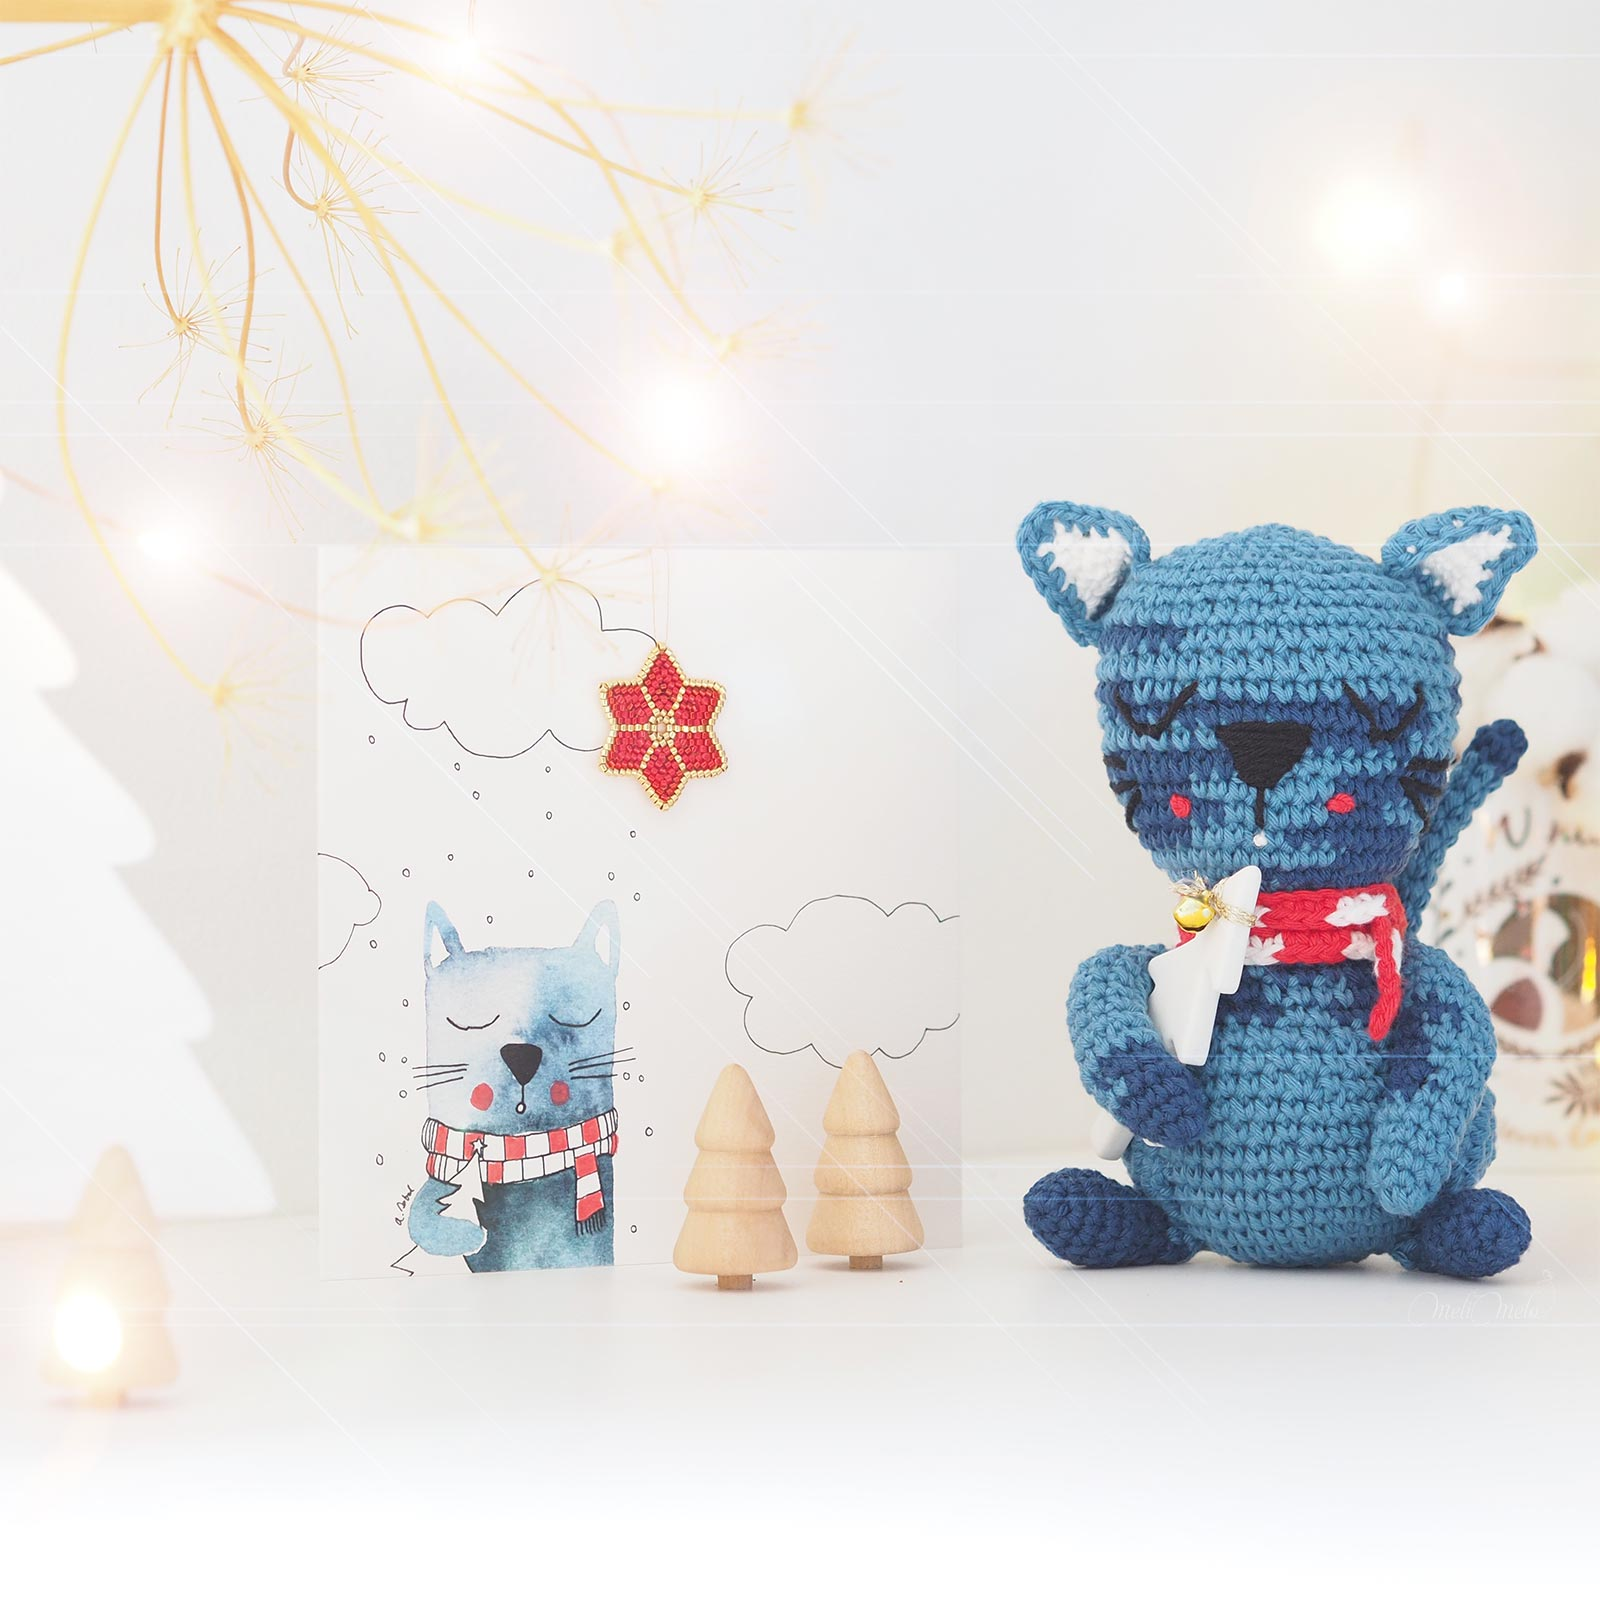 happy-new-year-2021-blue-cat-olalarte-illustrations-laboutiquedemelimelo